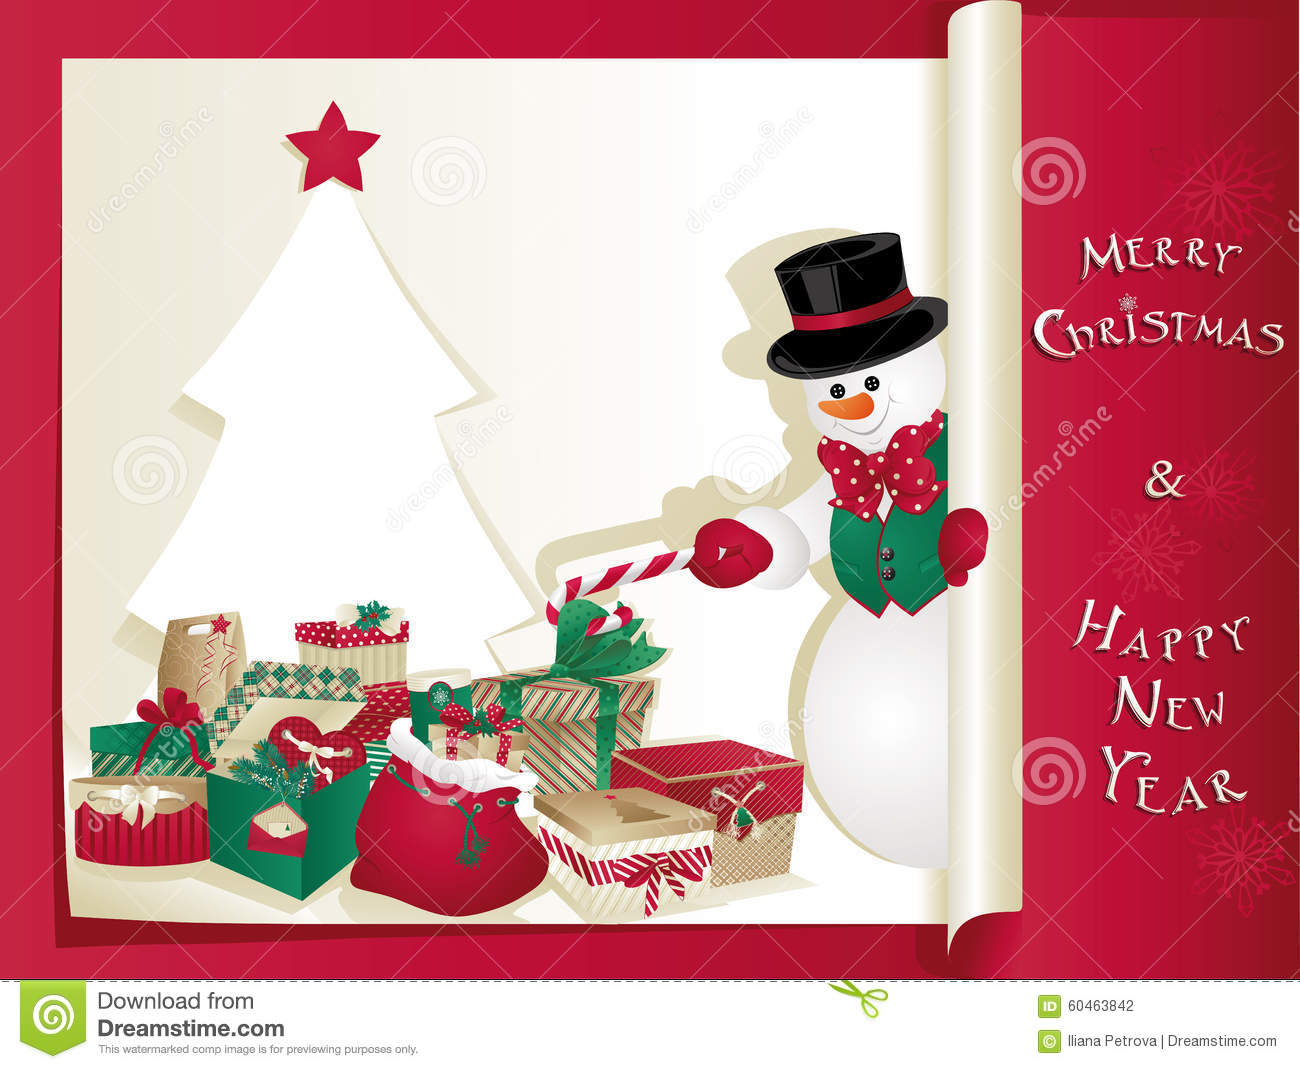 Christmas Card With Snowman Stock Vector - Image: 60463842